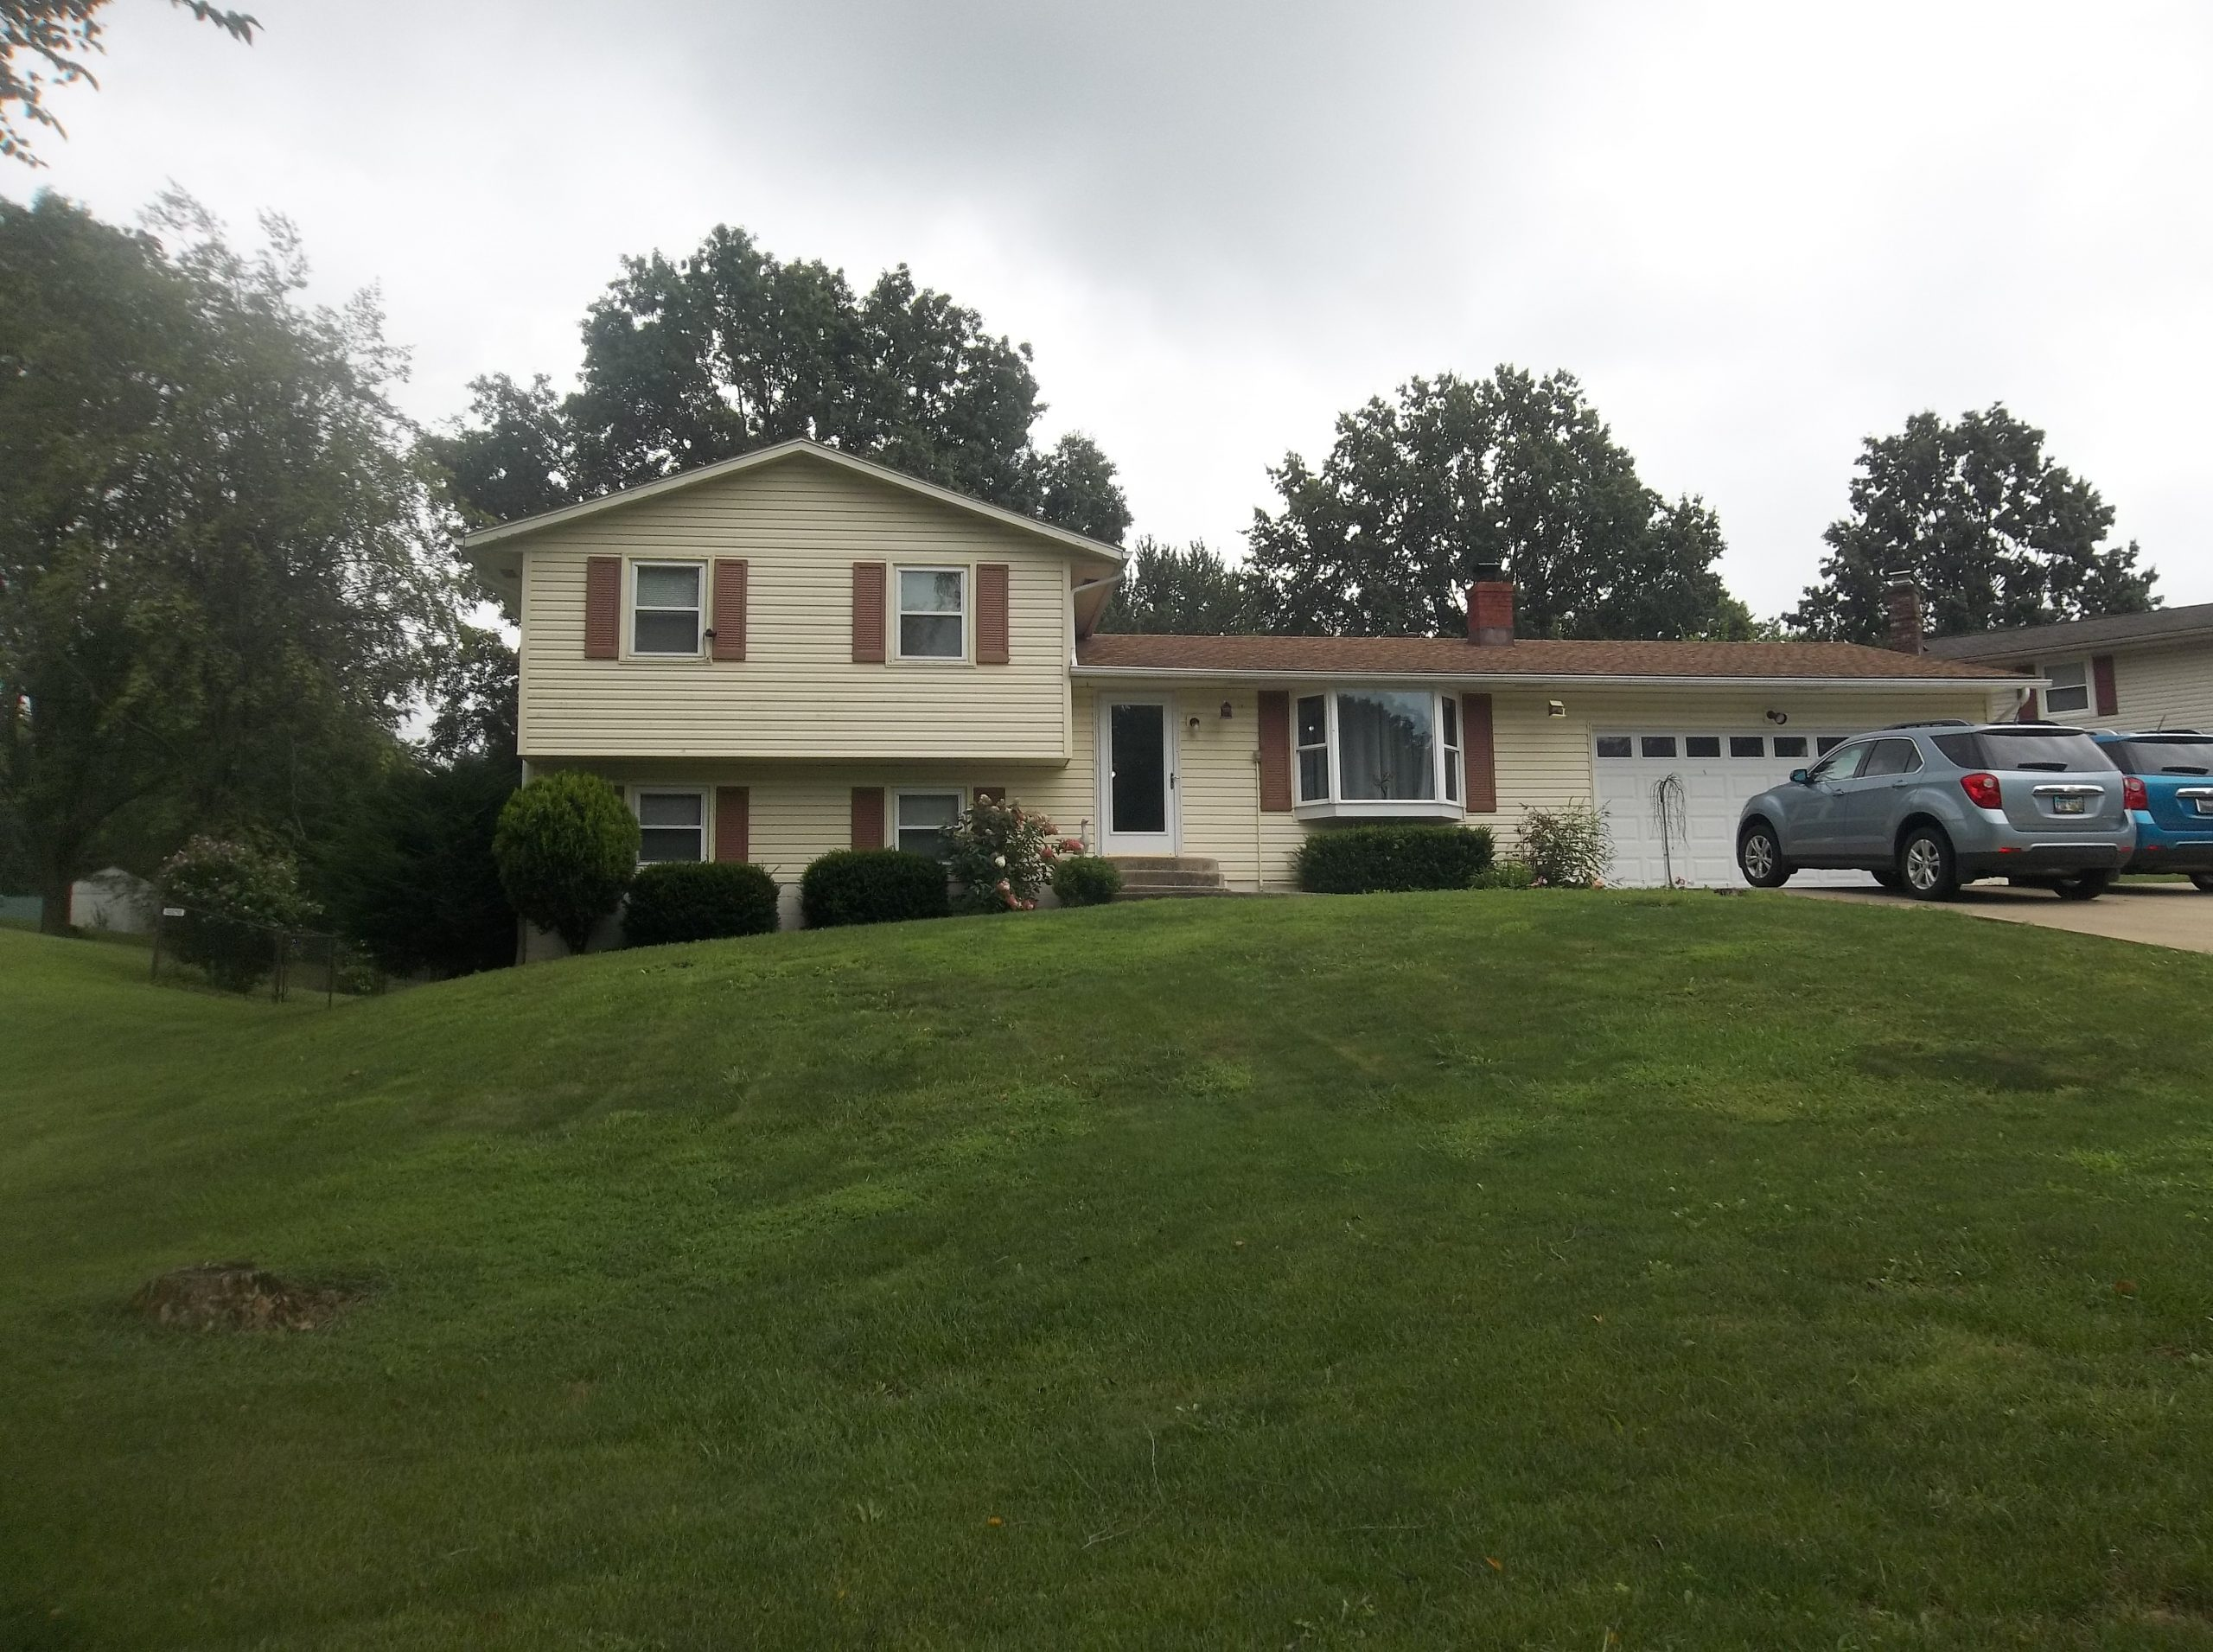 Auction~Saturday September 18th 2021 10:00am 6724 Silver Leaf Ave. NW Canal Fulton Ohio 44614